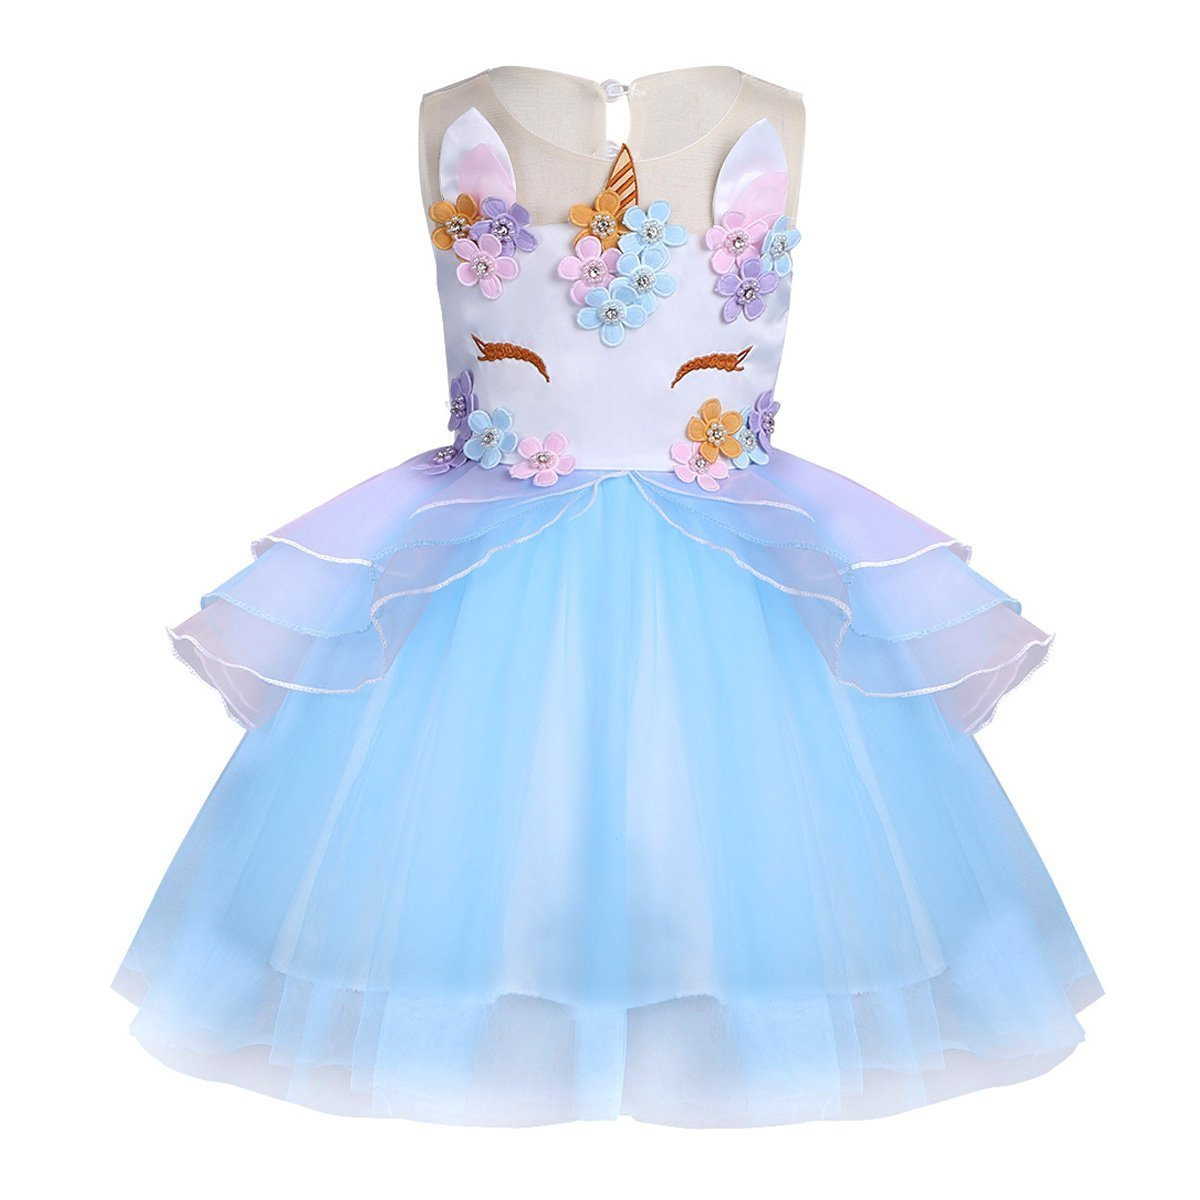 a147b915515f3 HEALTH AND COMFORT - Made of superior quality Polyester+Organza+Tulle